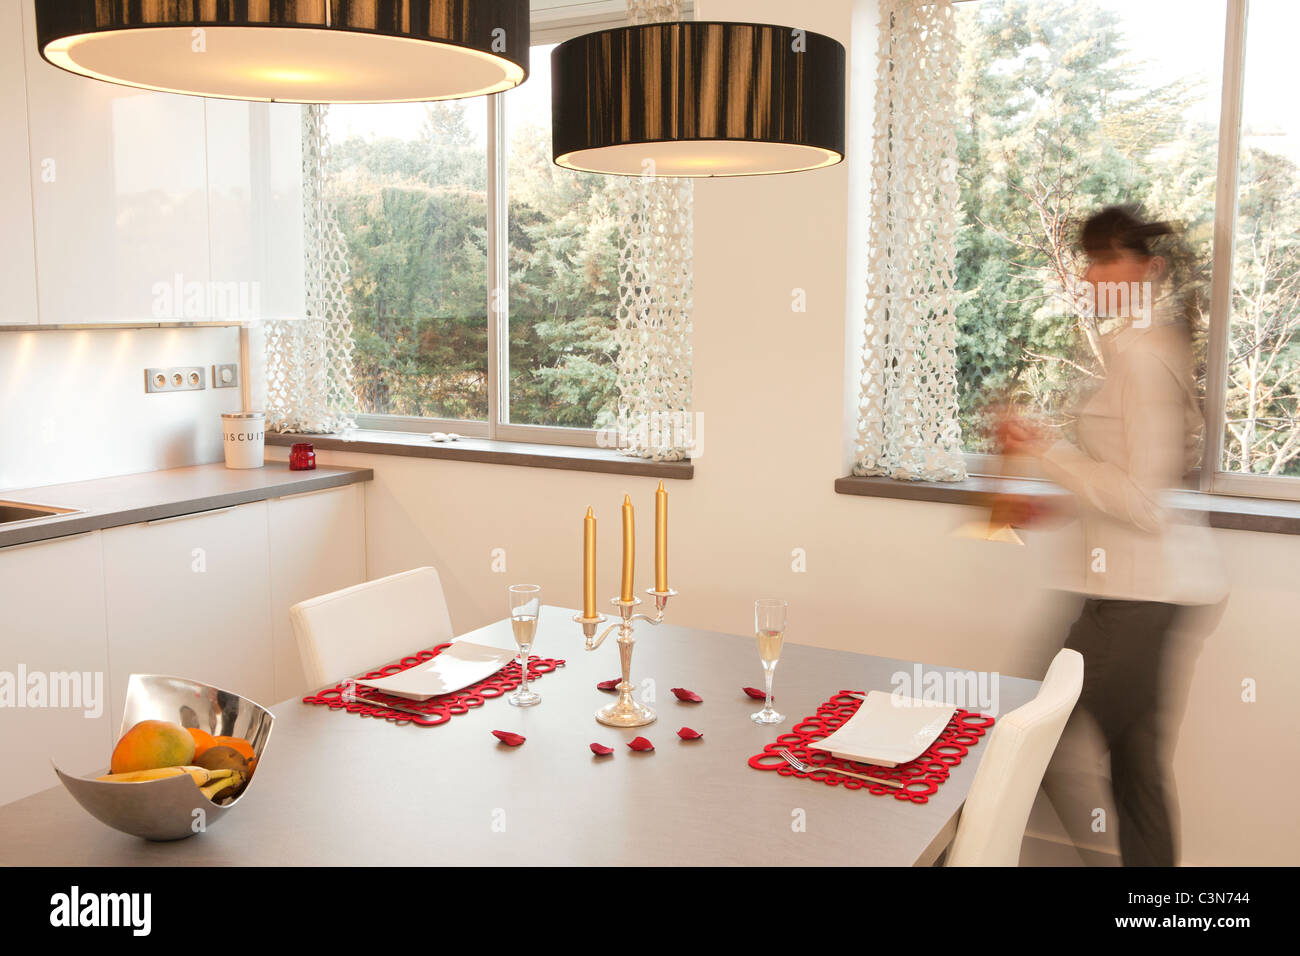 Woman preparing a candle light dinner - Stock Image